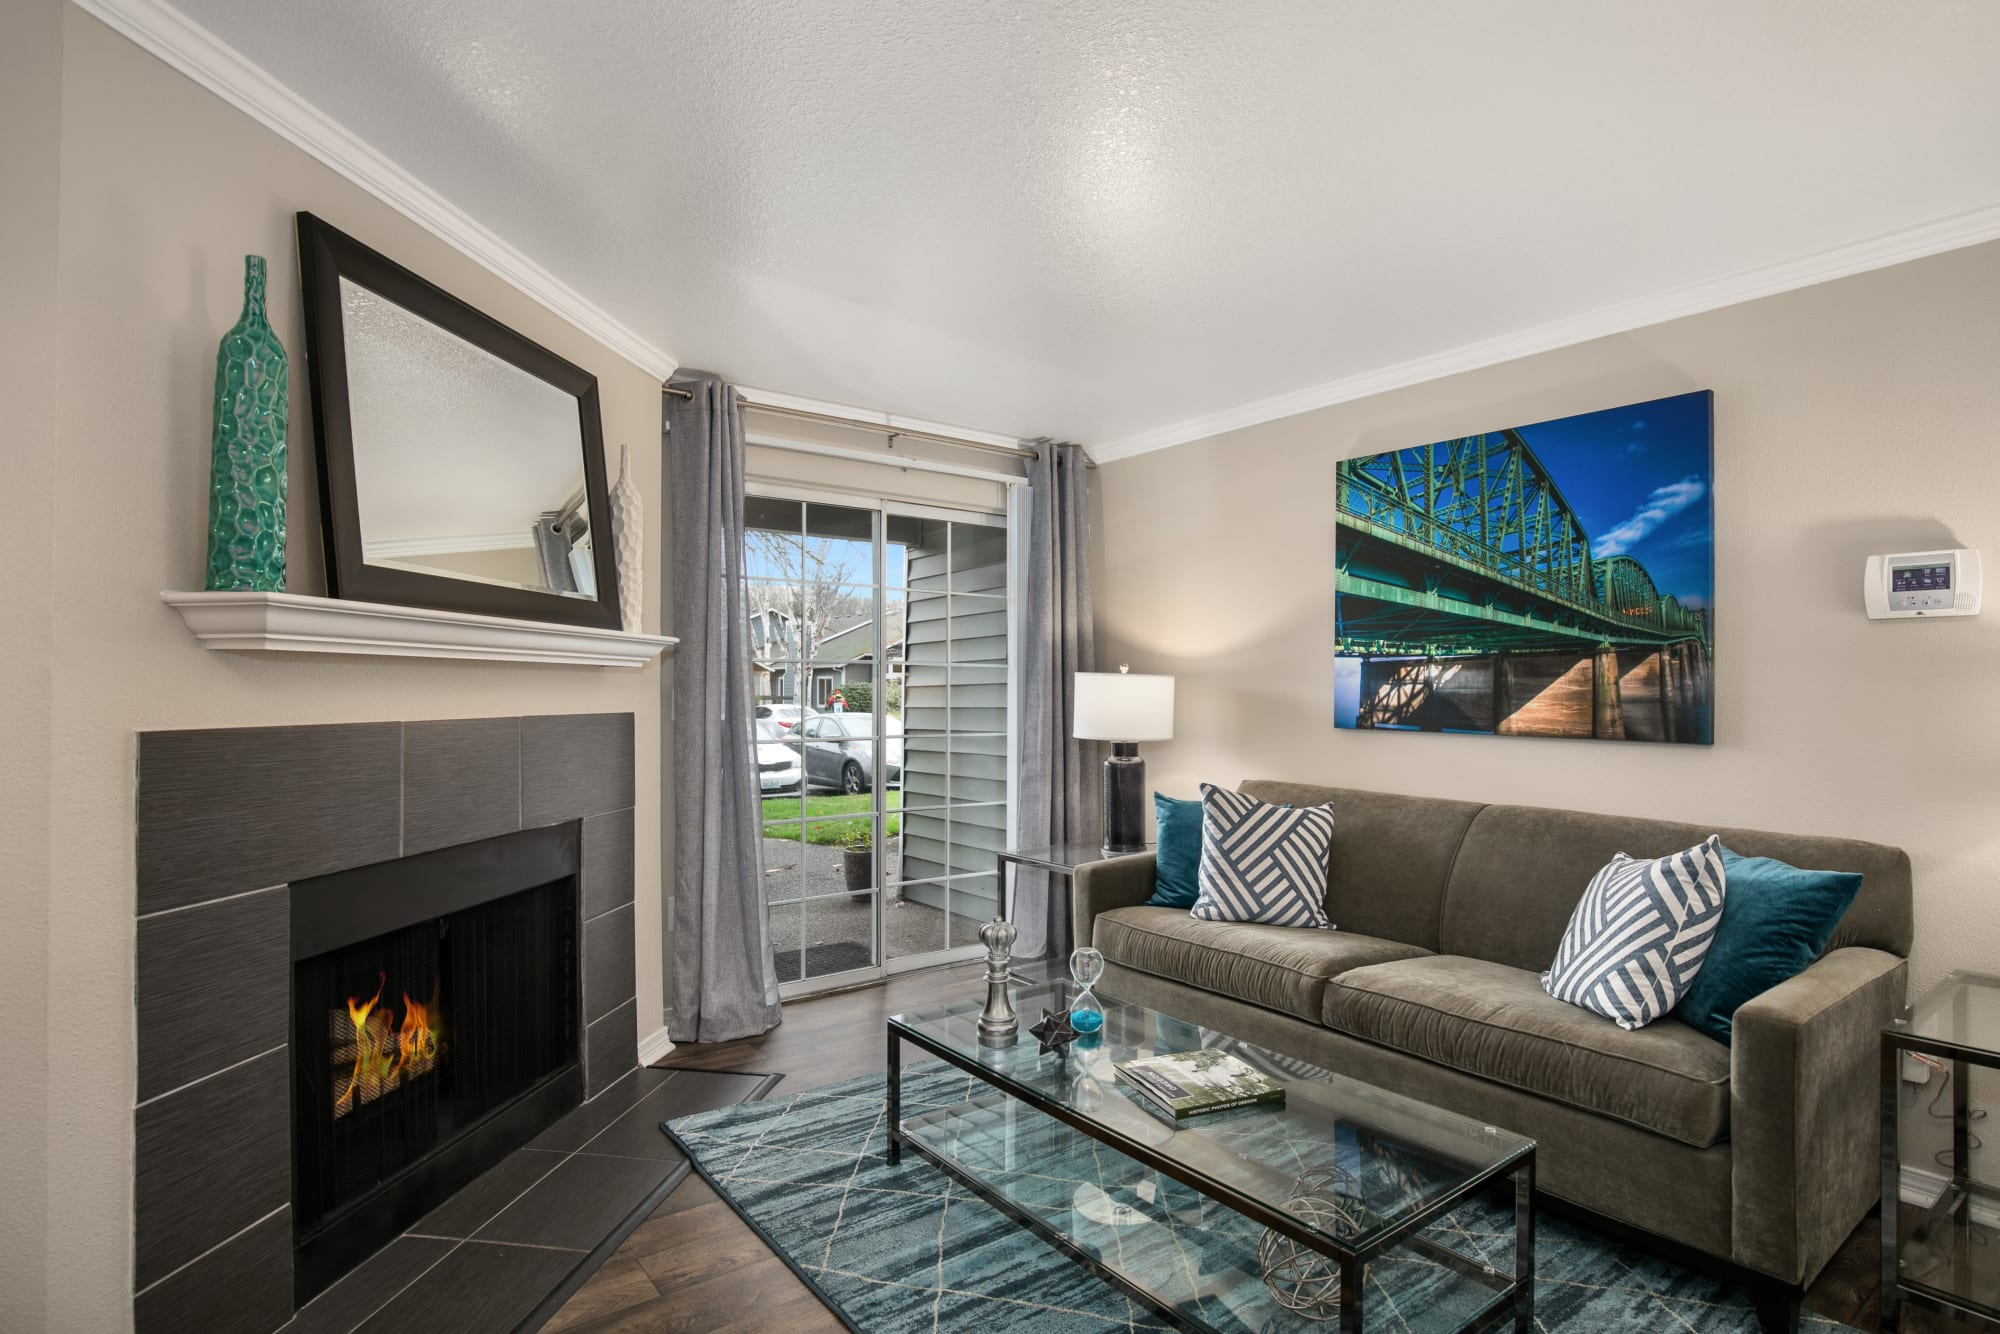 Living Room Model with Fireplace at Walnut Grove Landing Apartments in Vancouver, WA